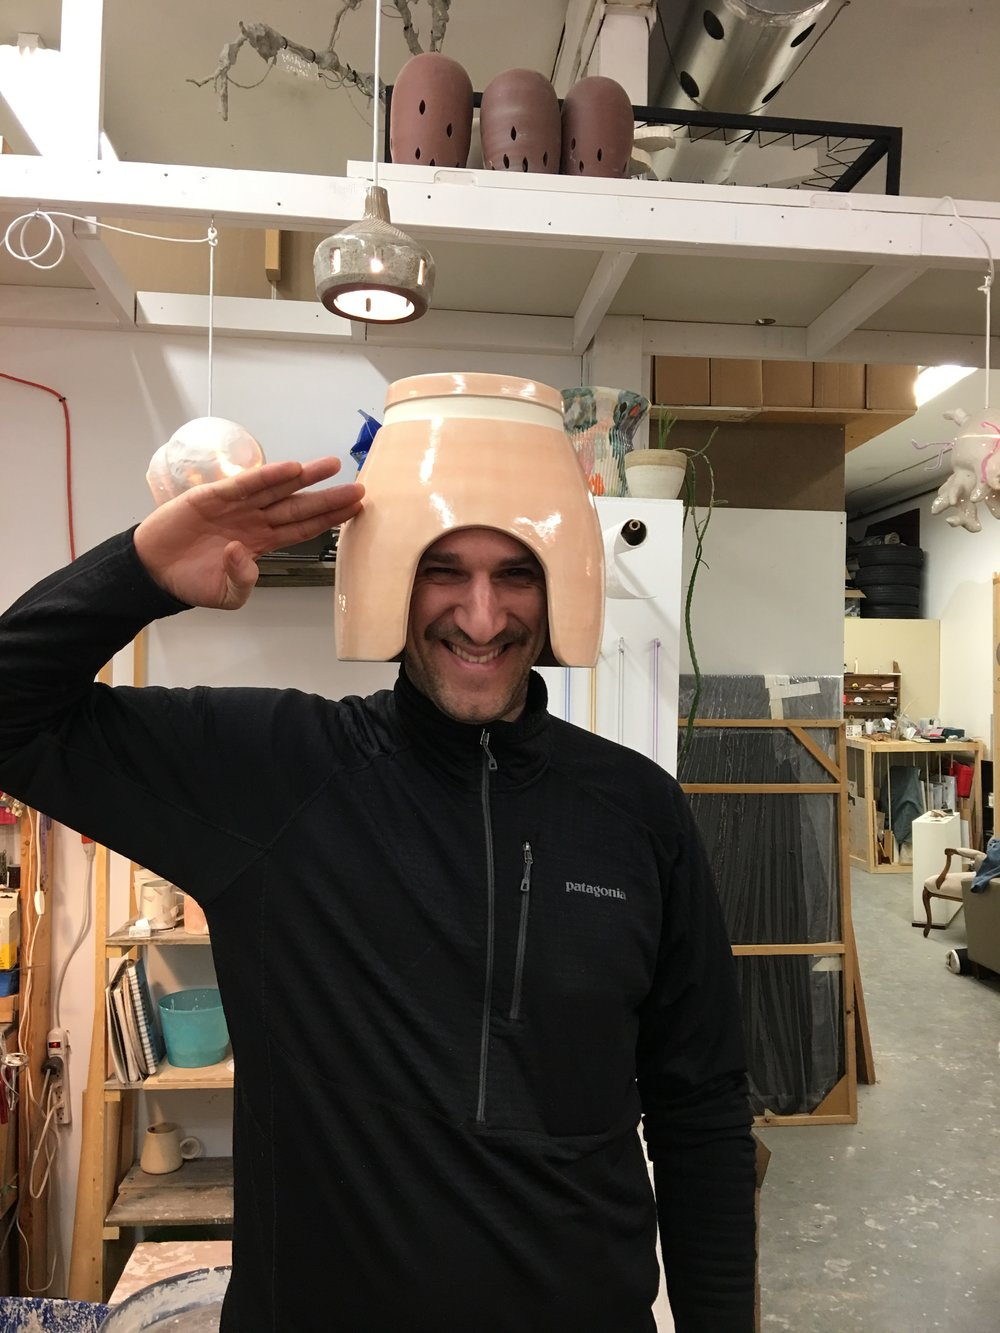 Mike Bourscheid testing the vase/helmet